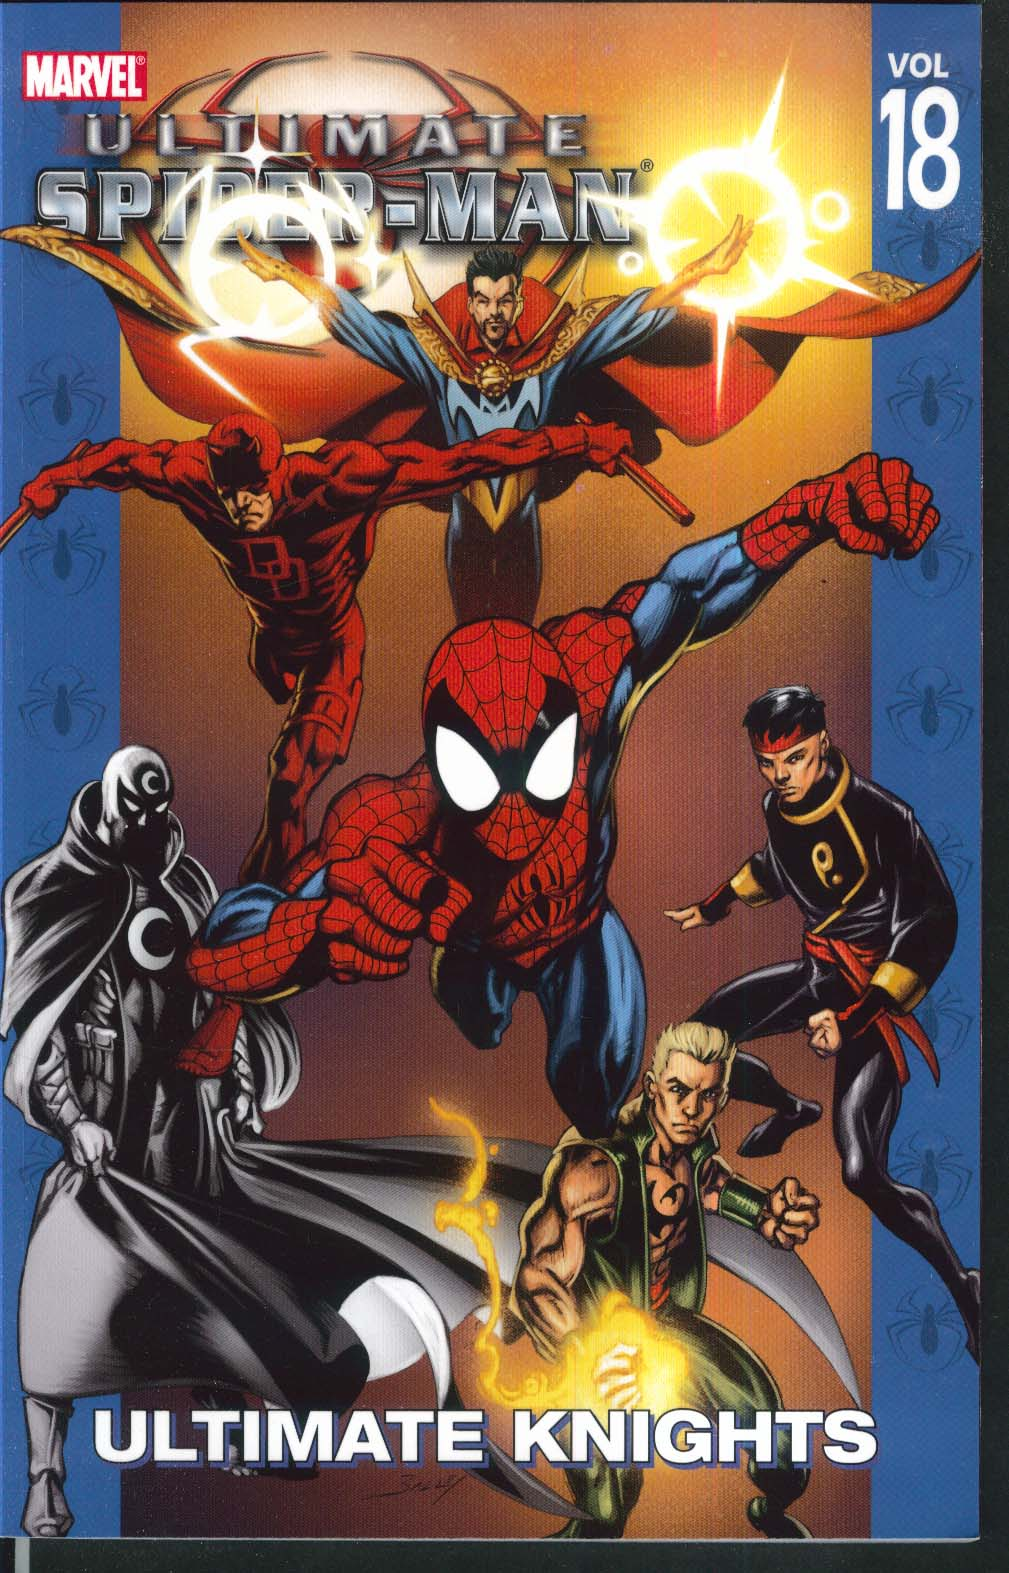 ULTIMATE SPIDER-MAN Vol 18 Ultimate Knights Marvel Graphic Novel 1st 2007